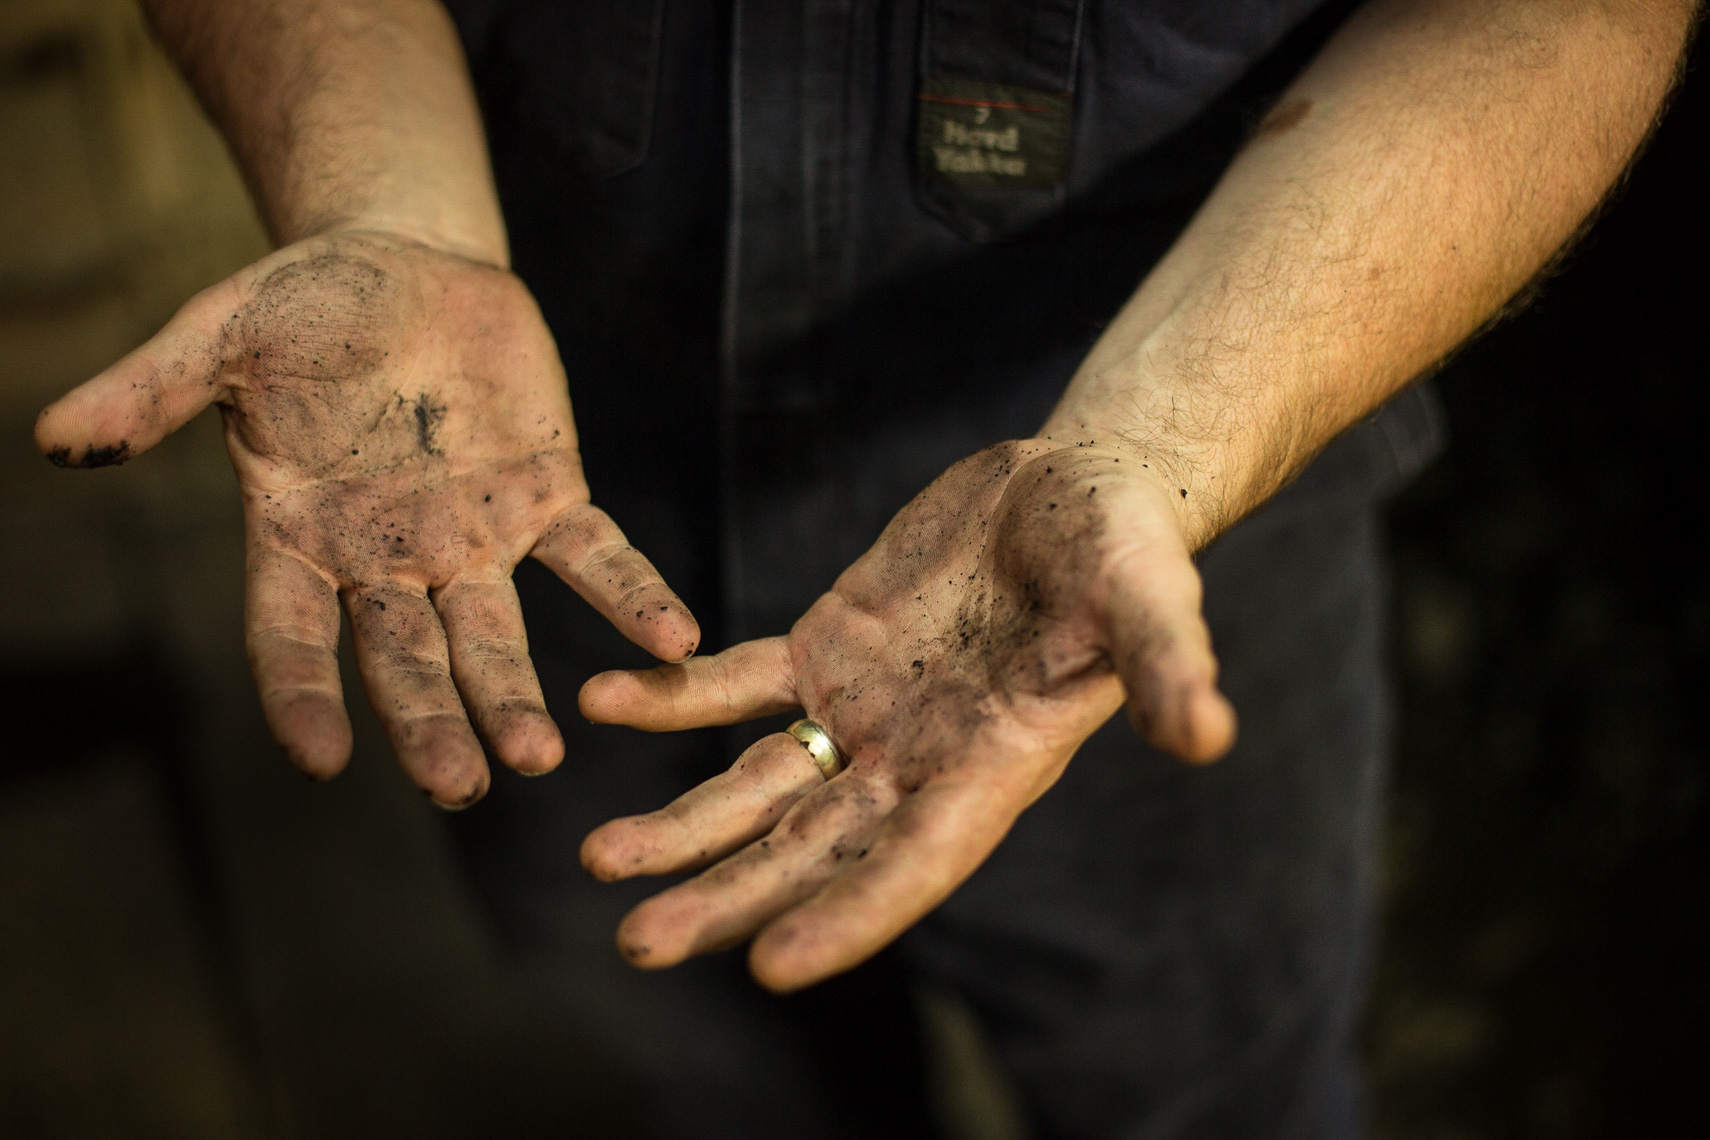 Coal dust on the hands of a steam engineer by Paul Green Photography